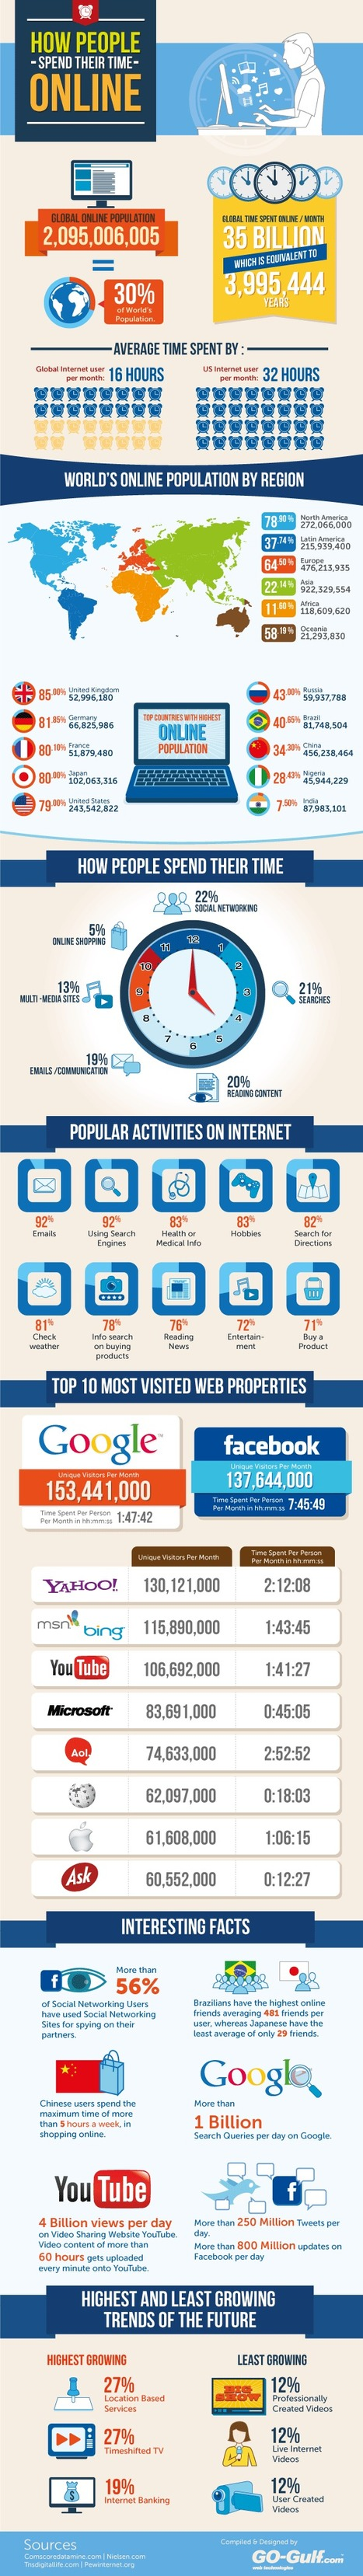 How People Spend Their Time Online [infographic] | Social Media Today | EDTECH - DIGITAL WORLDS - MEDIA LITERACY | Scoop.it